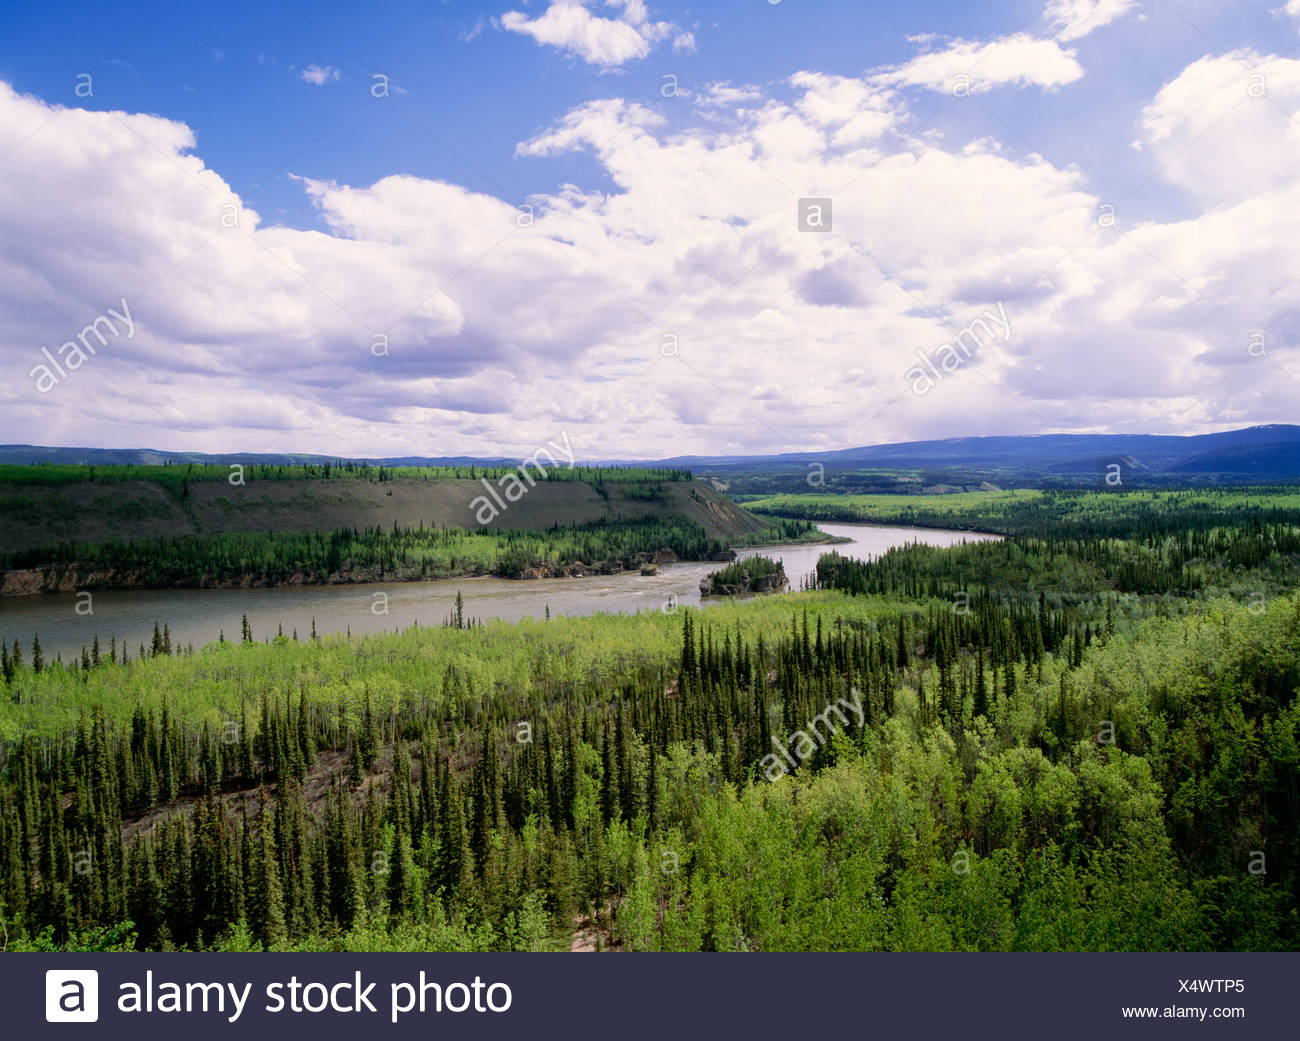 River flowing through lush landscape Stock Photo